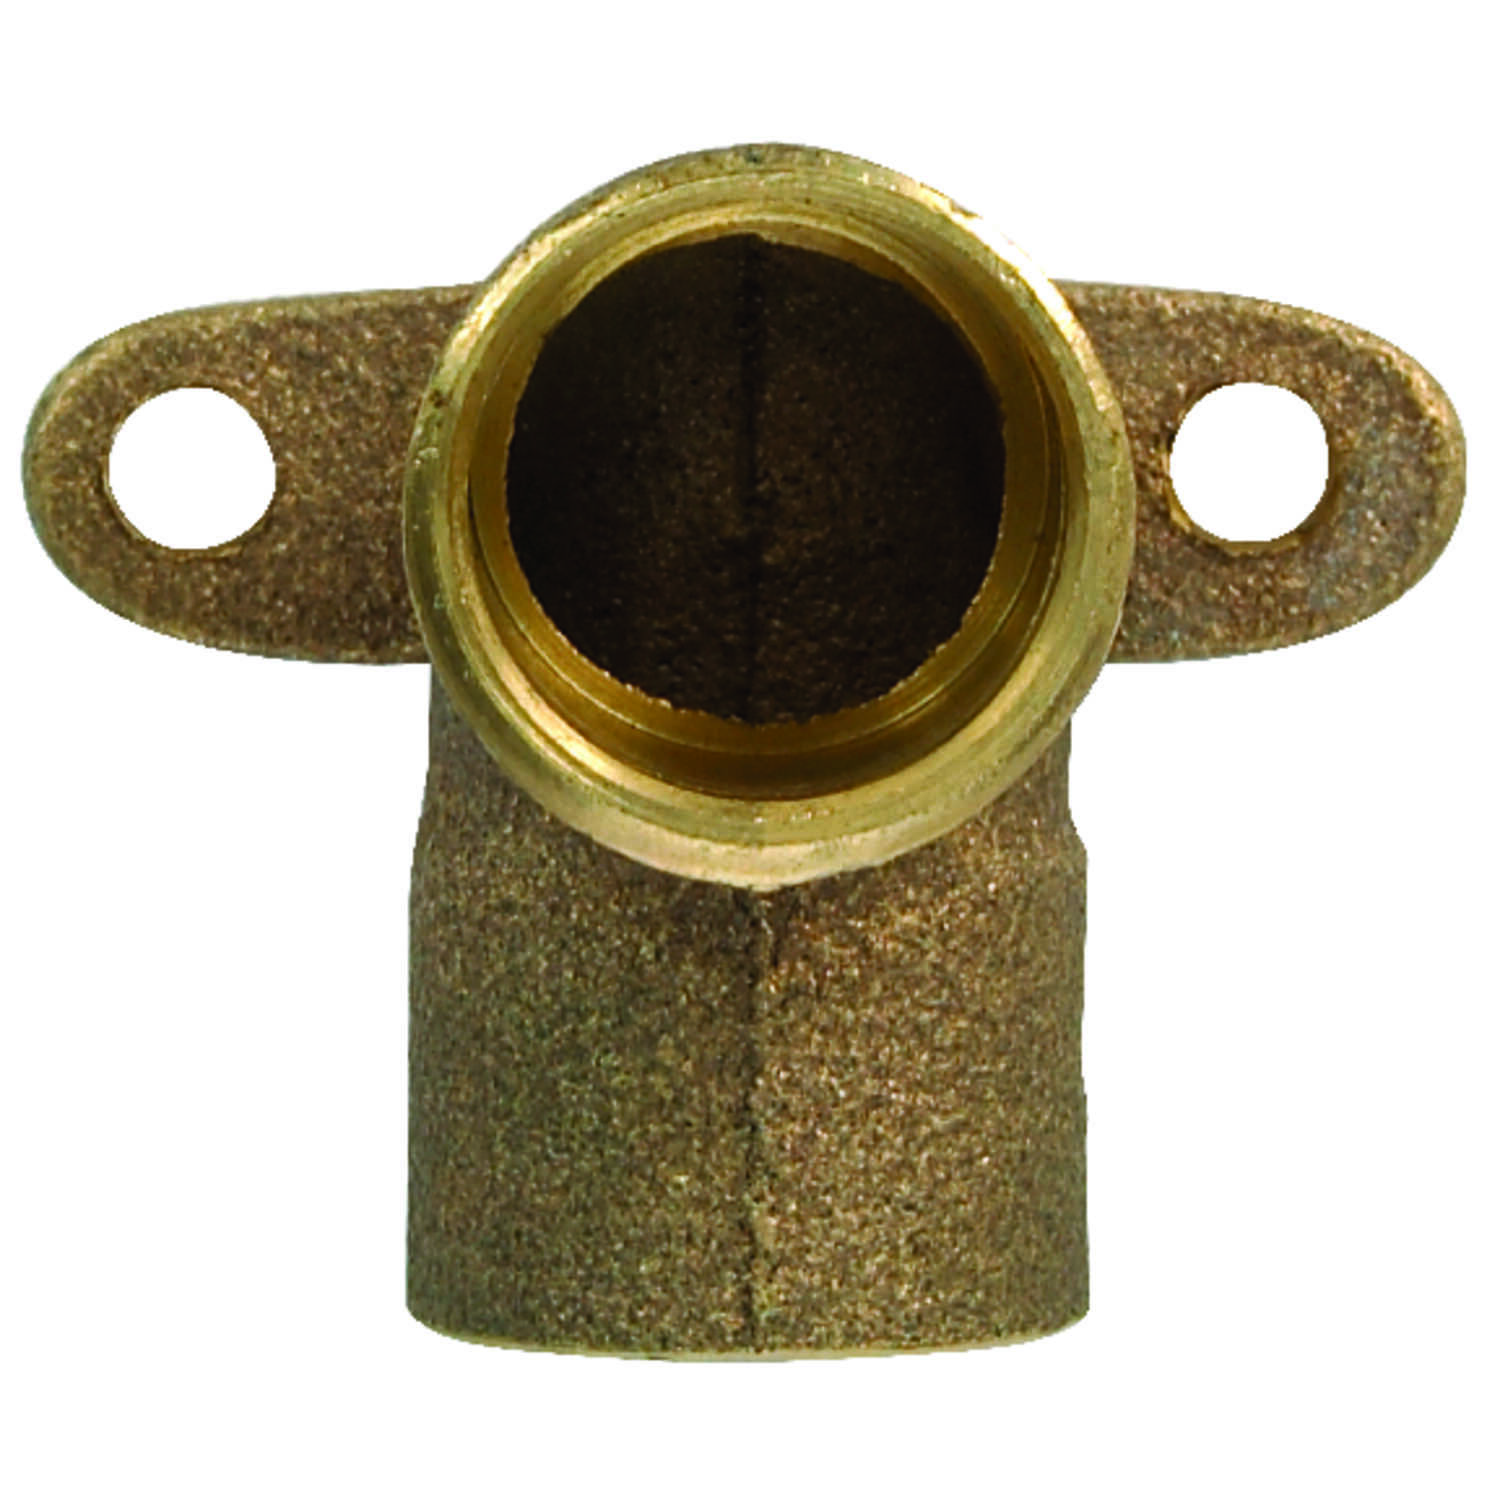 Elkhart  1/2 in. Sweat   x 1/2 in. Dia. FIP  Brass  Drop Ear Elbow